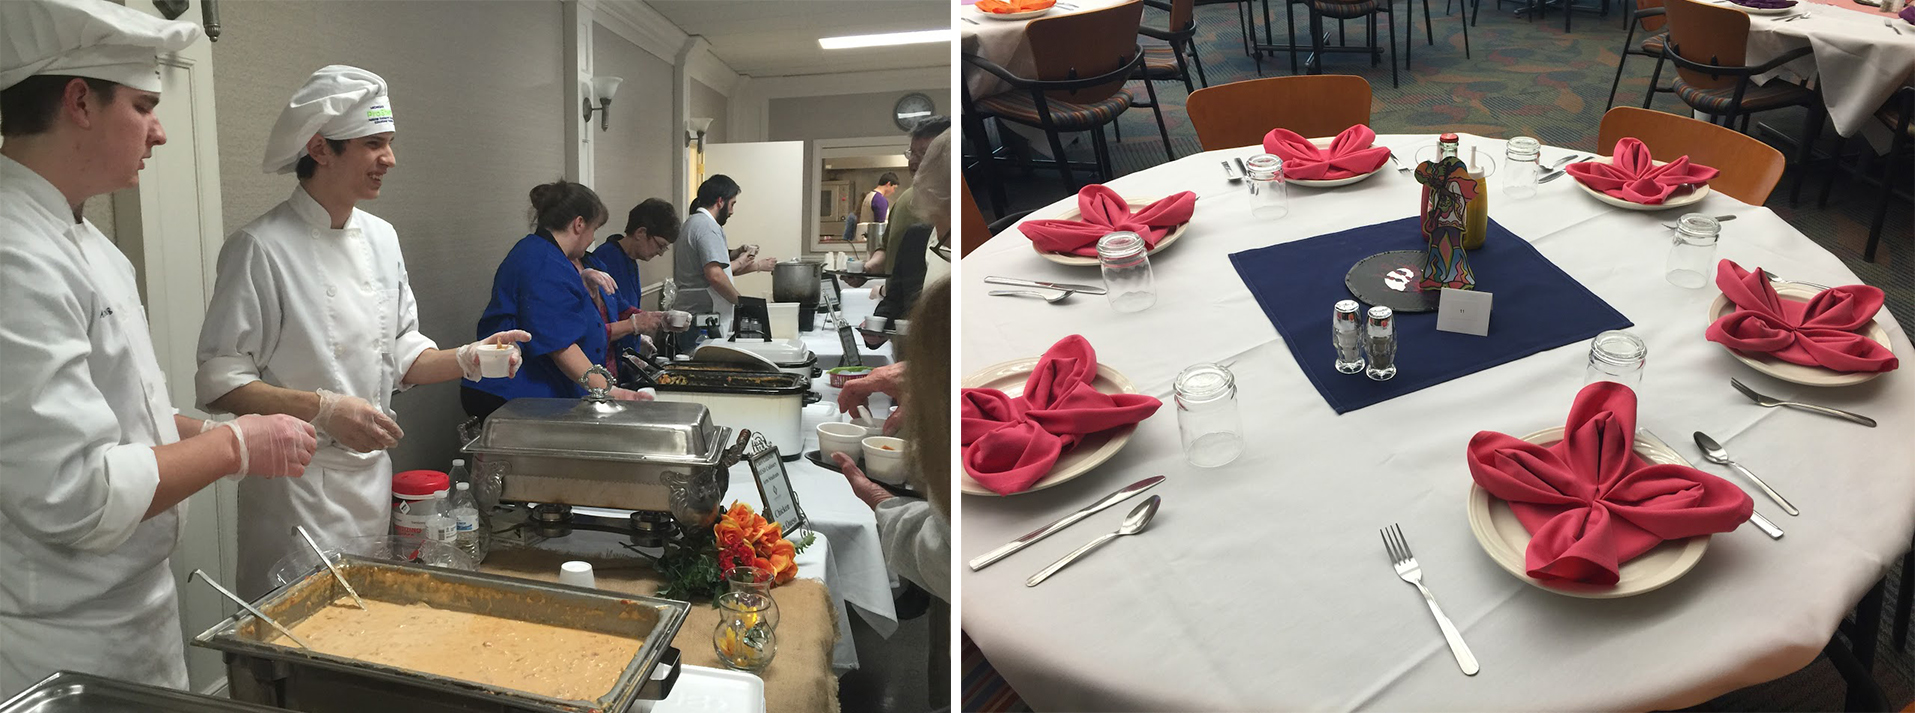 On the left, students smile as they serve guests. On the right, delicate pinwheels have been made out of cloth napkins and sit around at six place settings at a circular table.